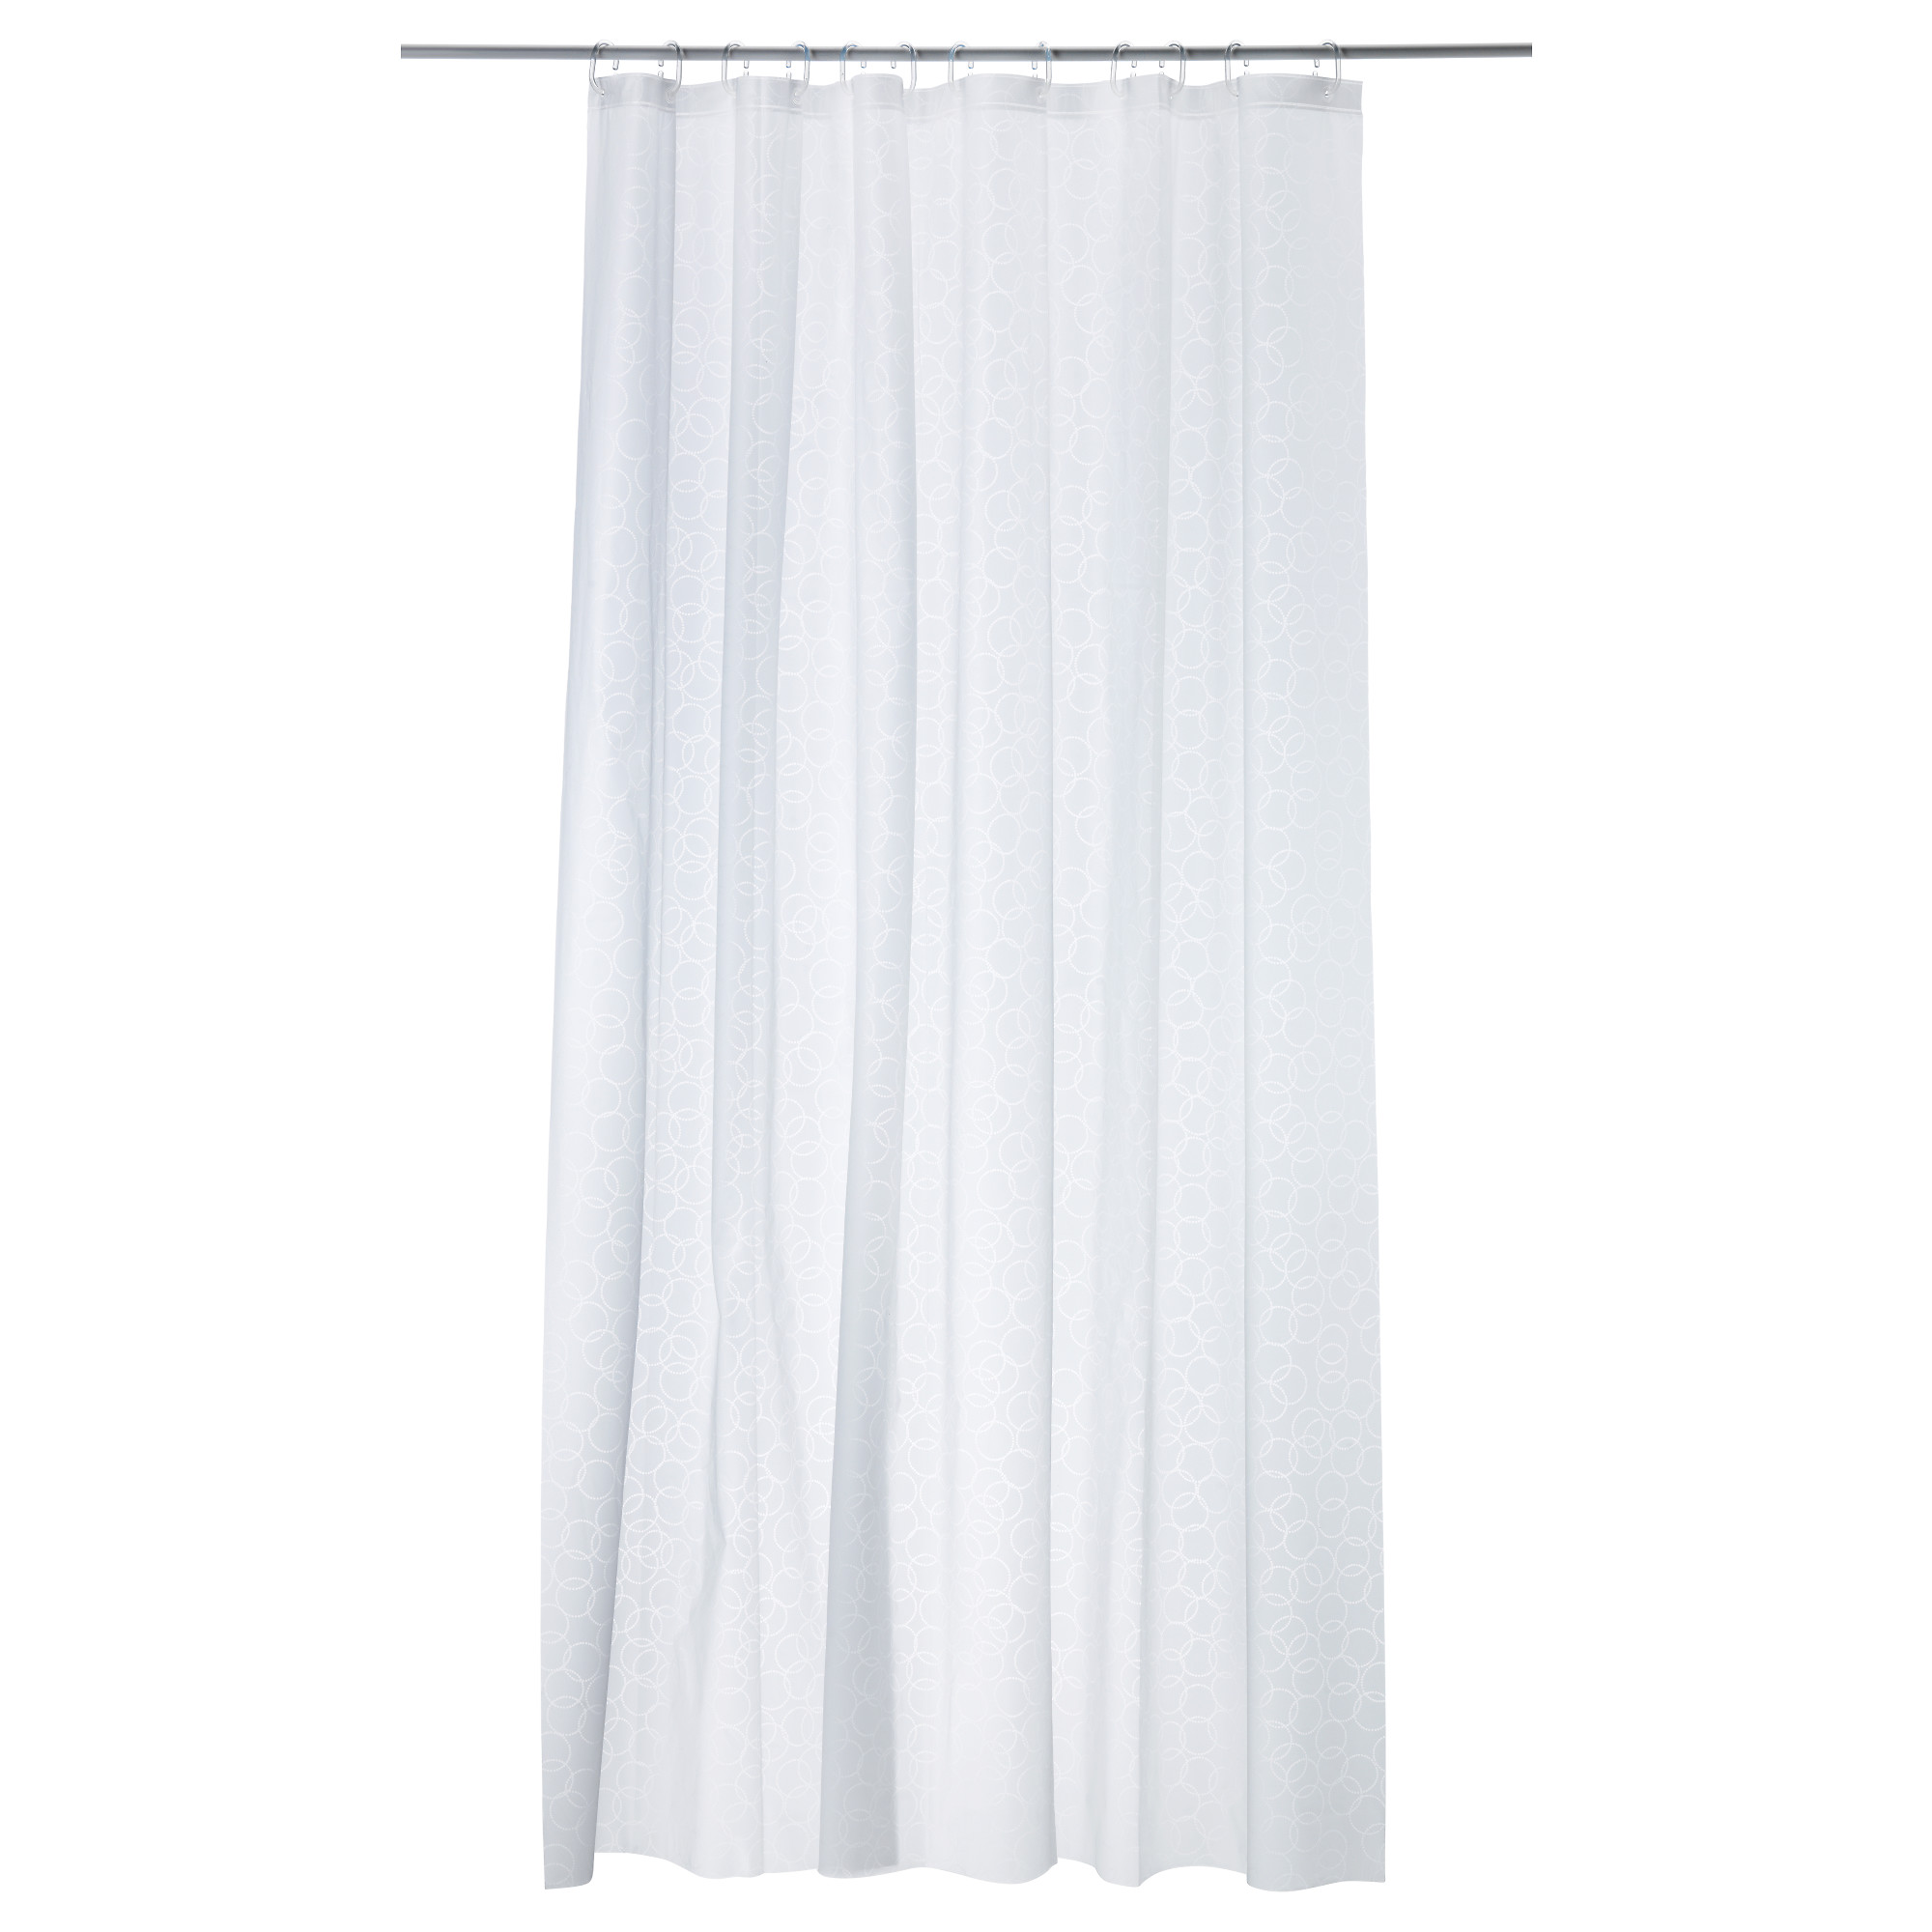 Bathroom plastic curtains - Innaren Shower Curtain White Length 71 Width 71 Area 34 88